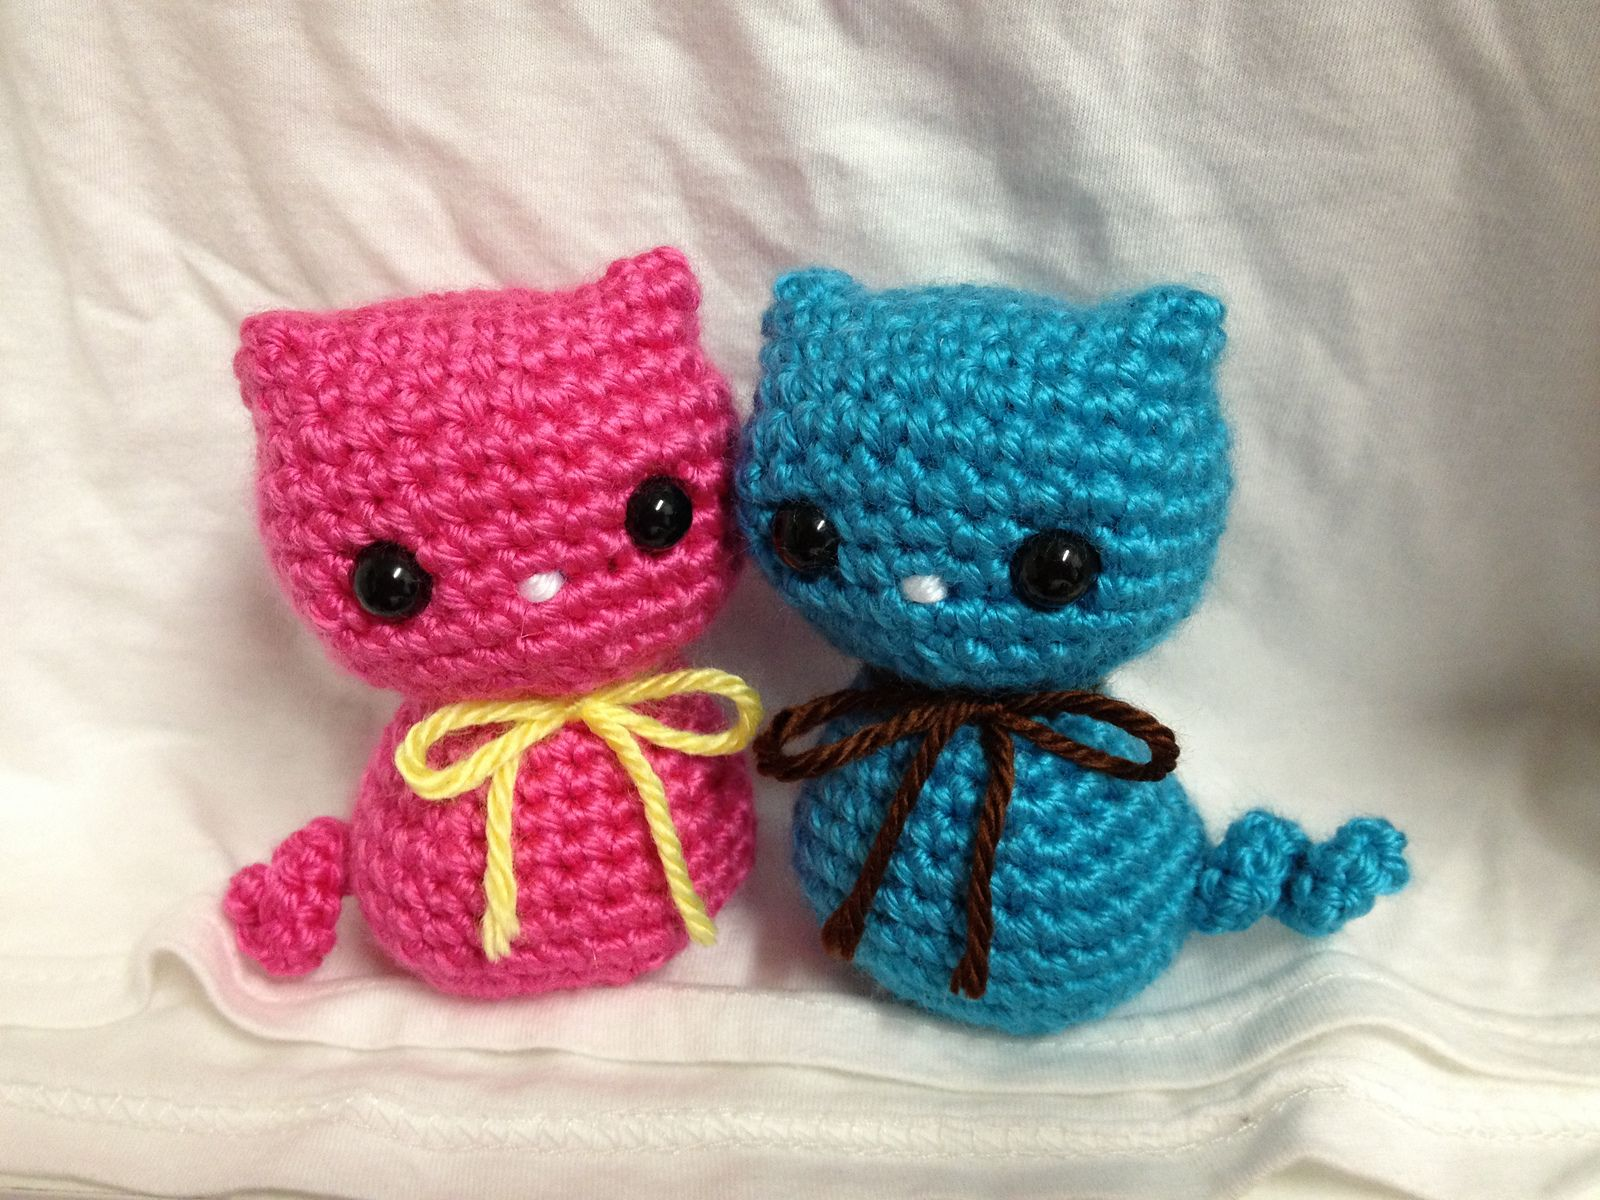 Ravelry crochet colorful kitty cat doll toy pattern by dds ravelry crochet colorful kitty cat doll toy pattern by dds crochet free pattern bankloansurffo Image collections